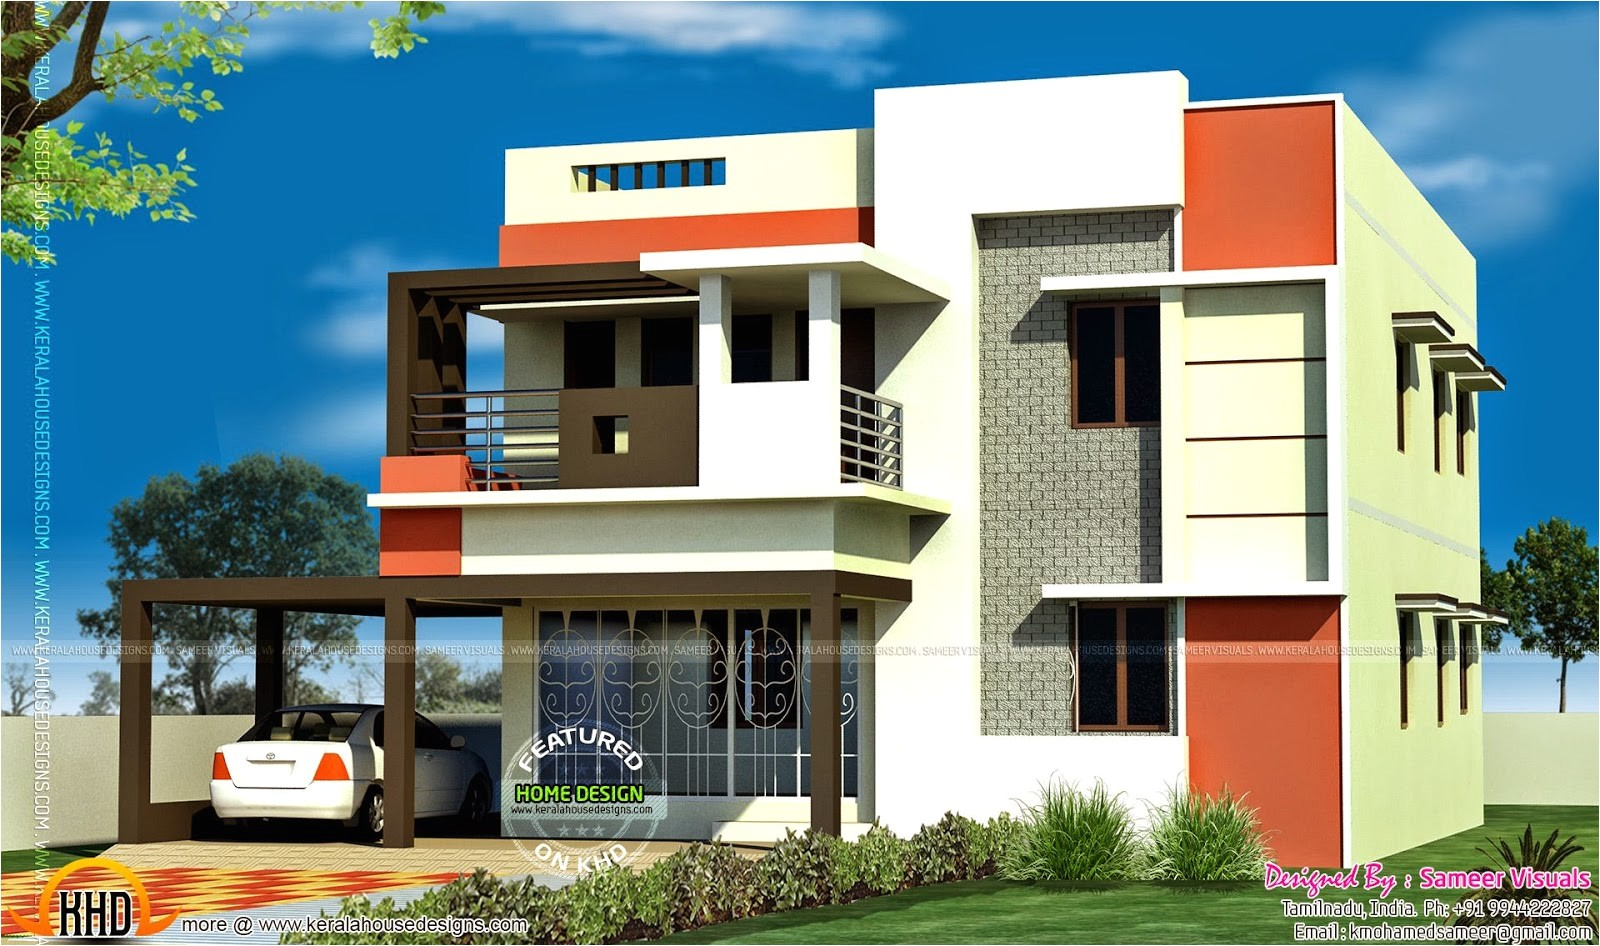 3 bedroom tamilnadu flat roof house